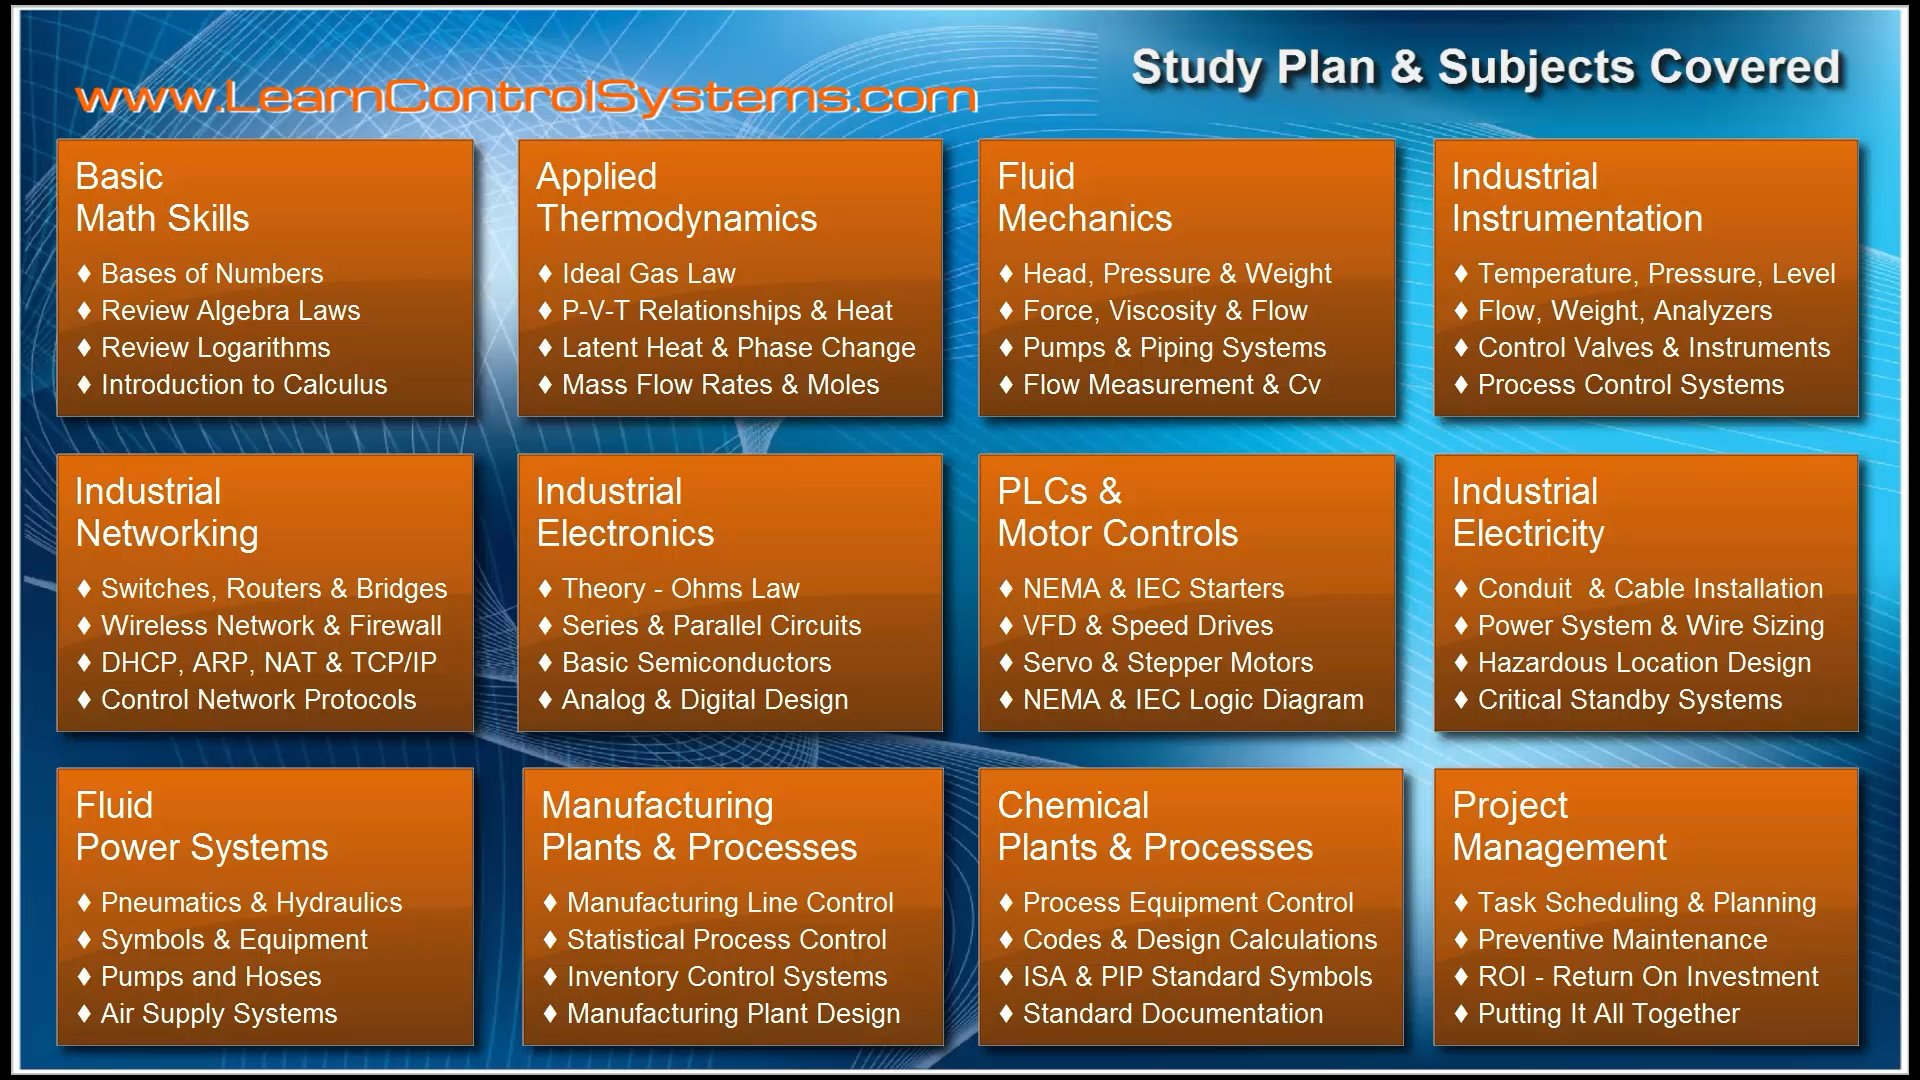 Purchase the Study Guide from ISA - Companion Manual to the Video Series